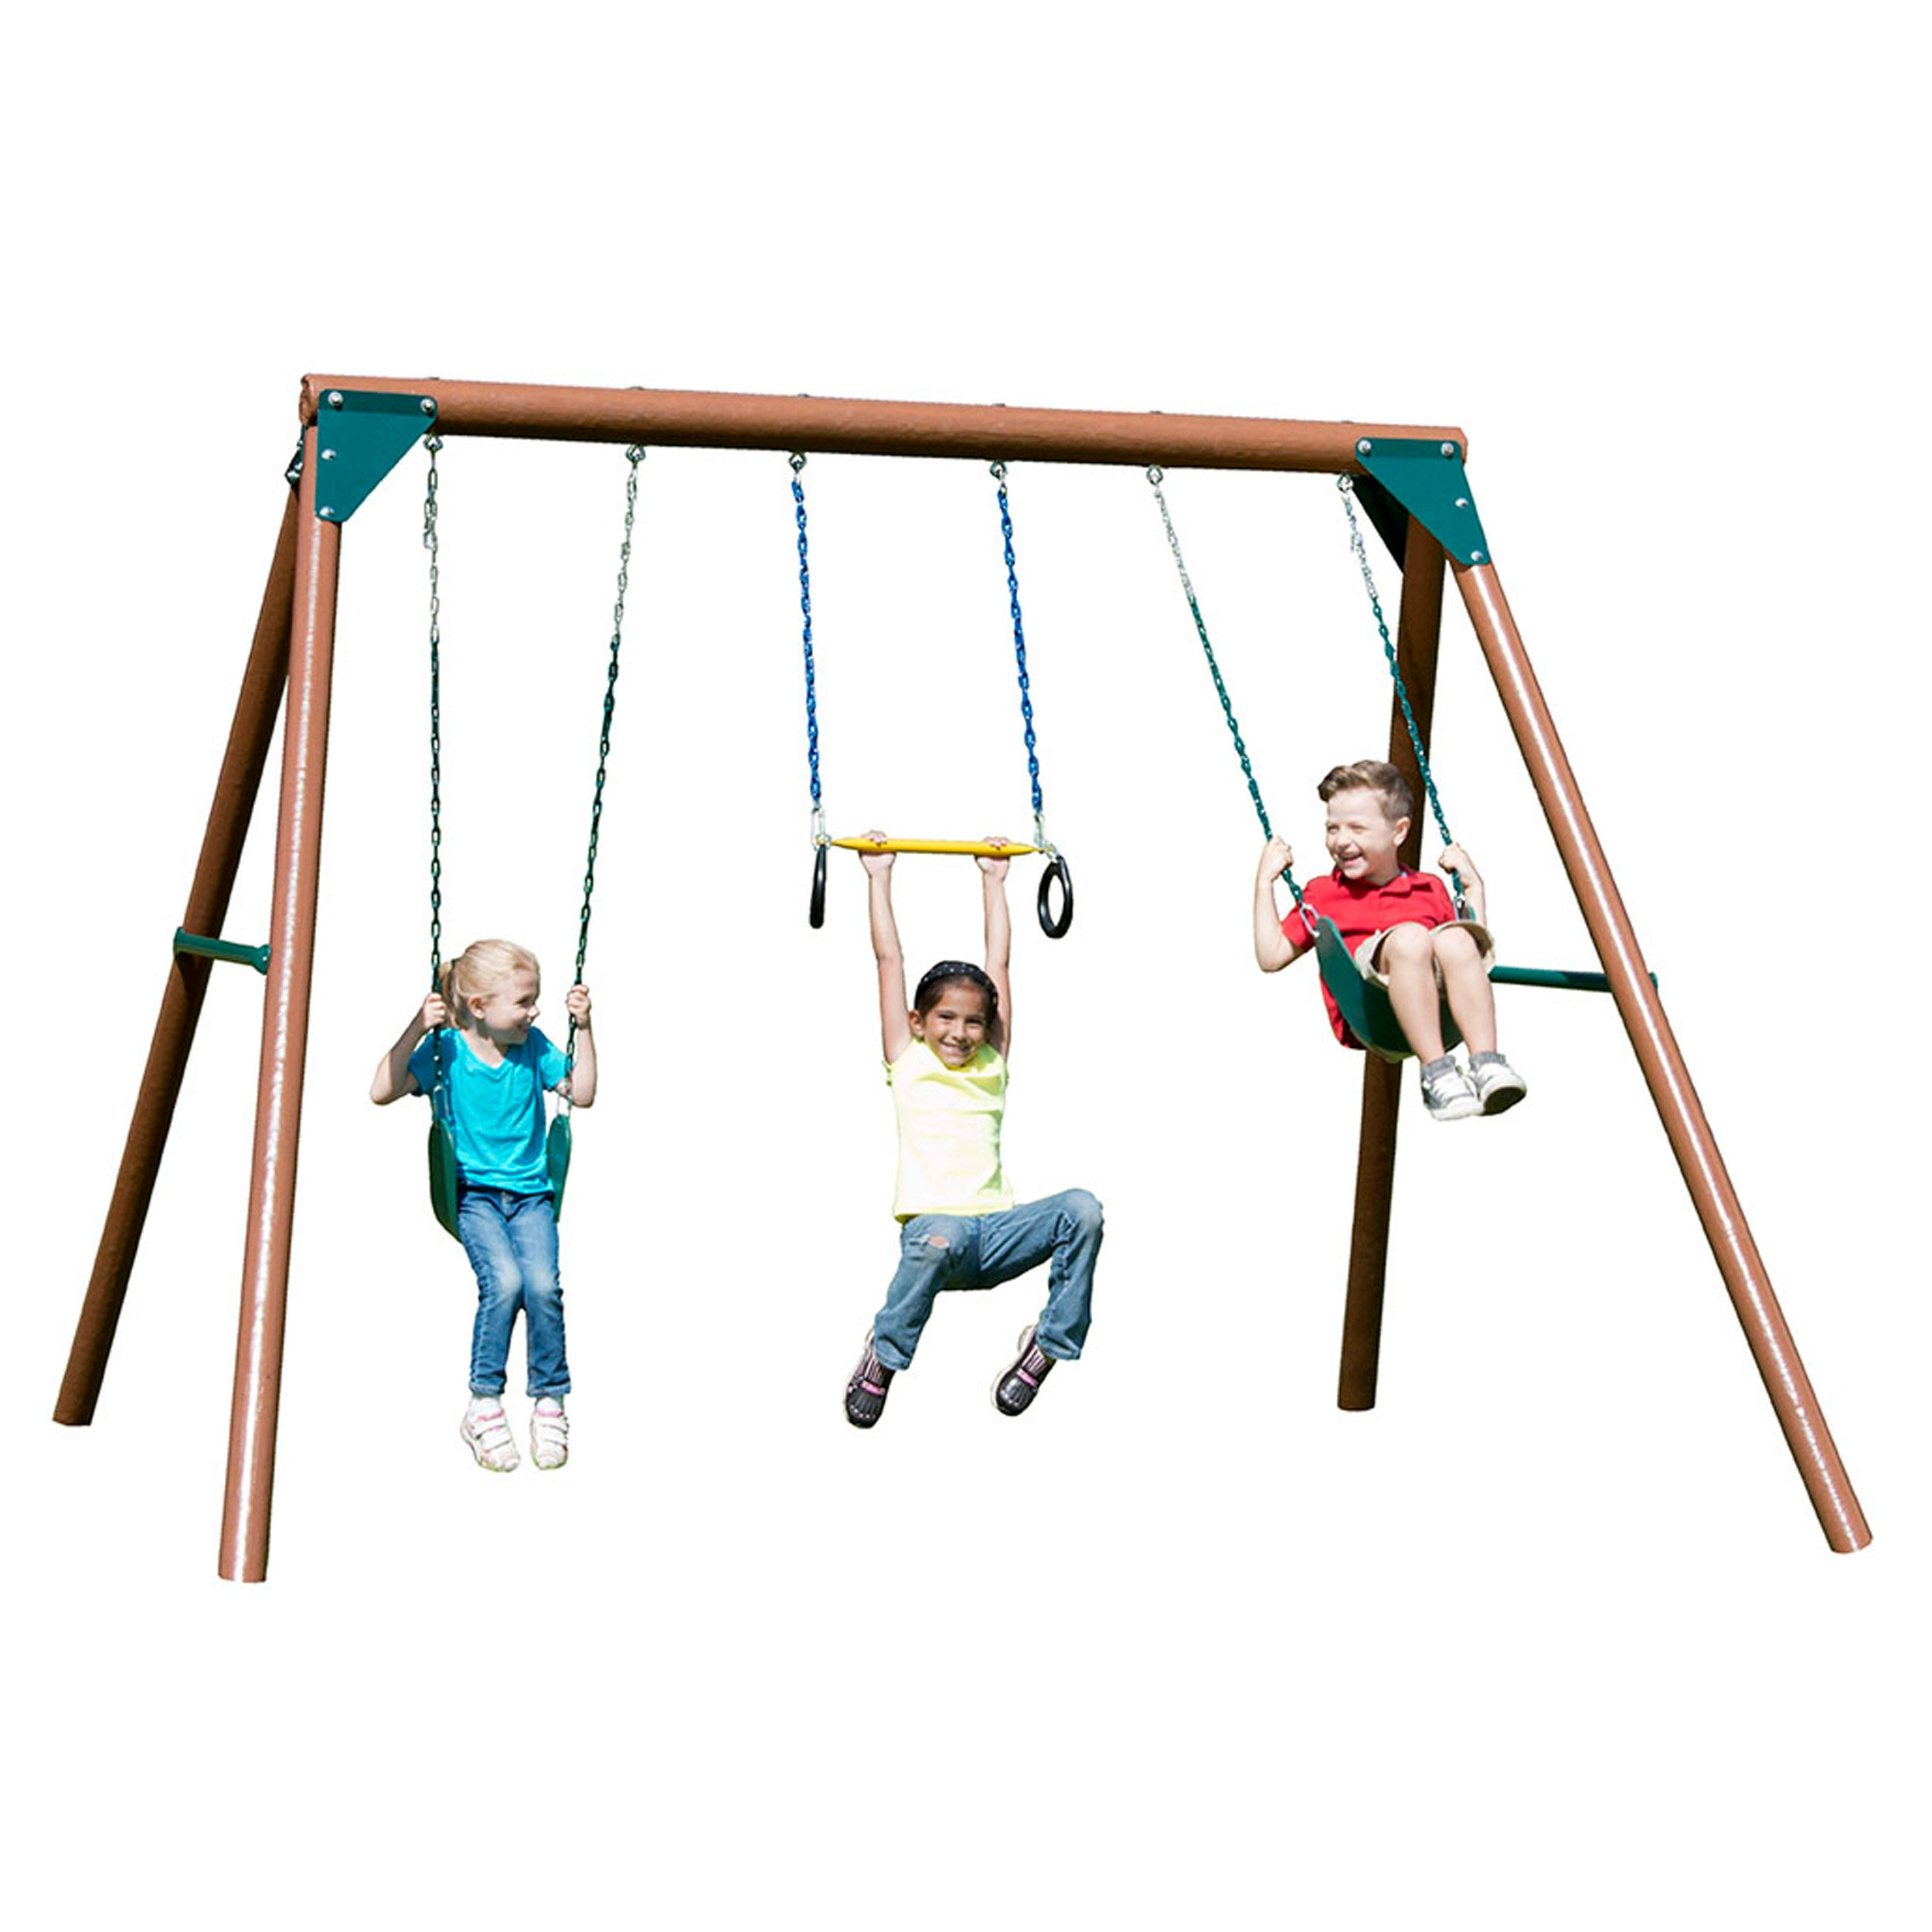 Swing-N-Slide Orbiter Complete Wooden Swing Set, Safety Tested for Backyards with Two Swings and Trapeze Handle Bar by Swing-N-Slide (Image #1)